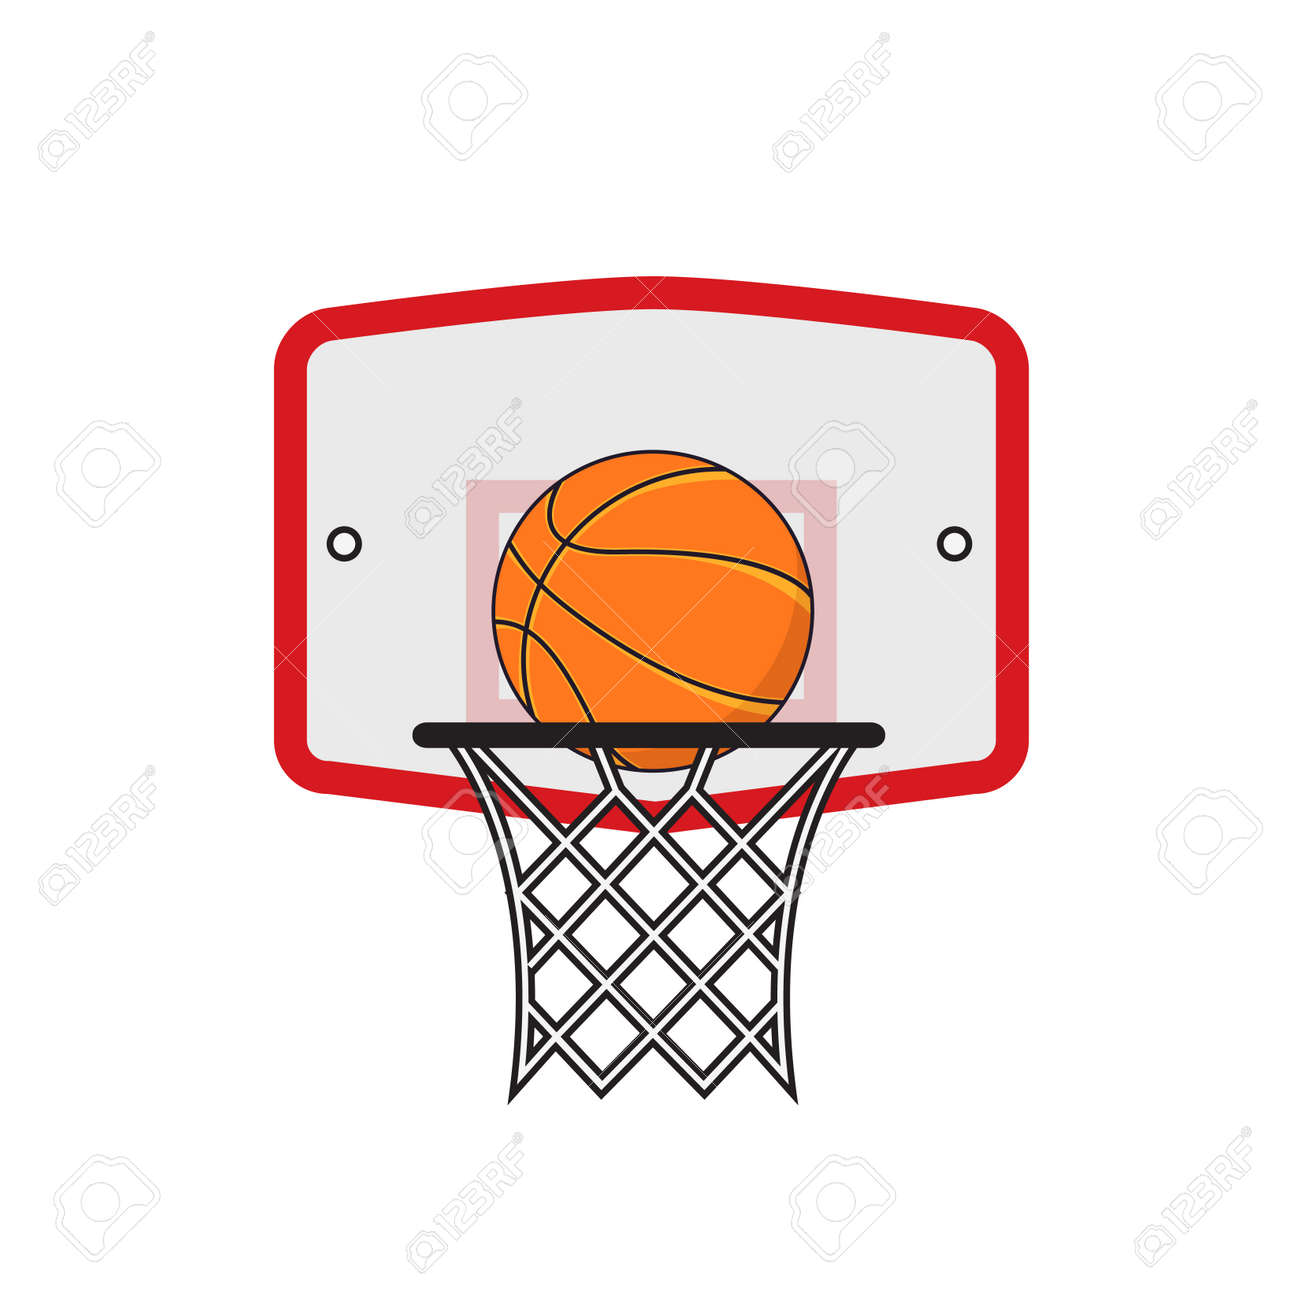 Basketball Hoop And Orange Ball On The White Background Royalty Free